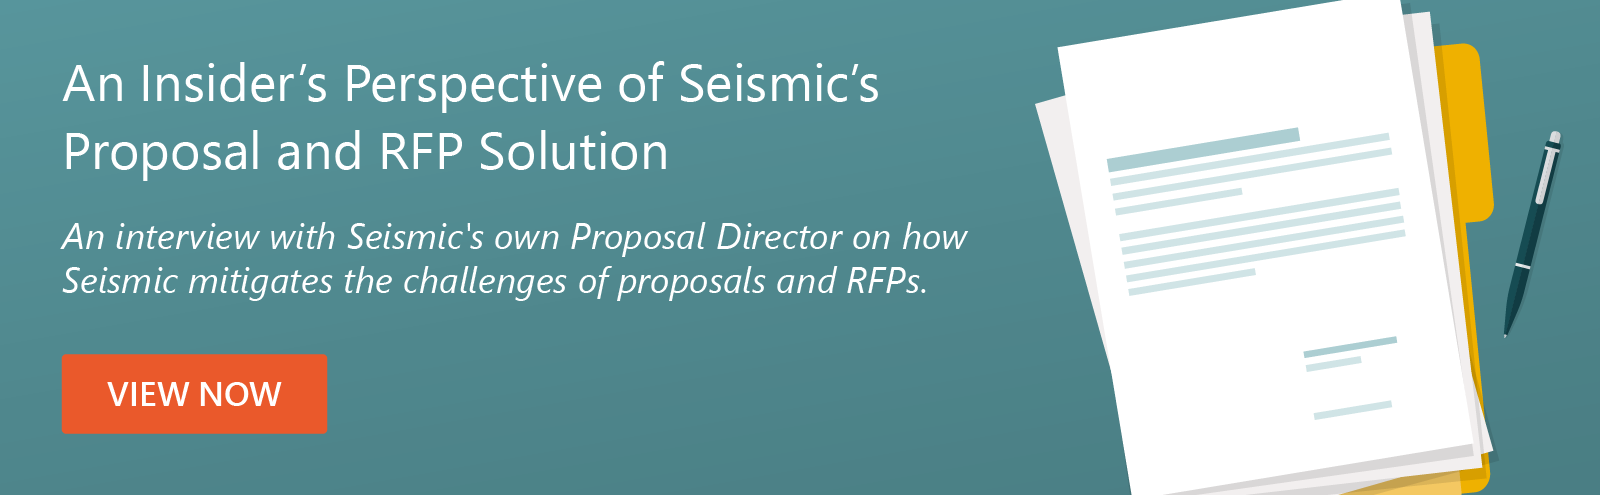 RFP and Proposal Solution